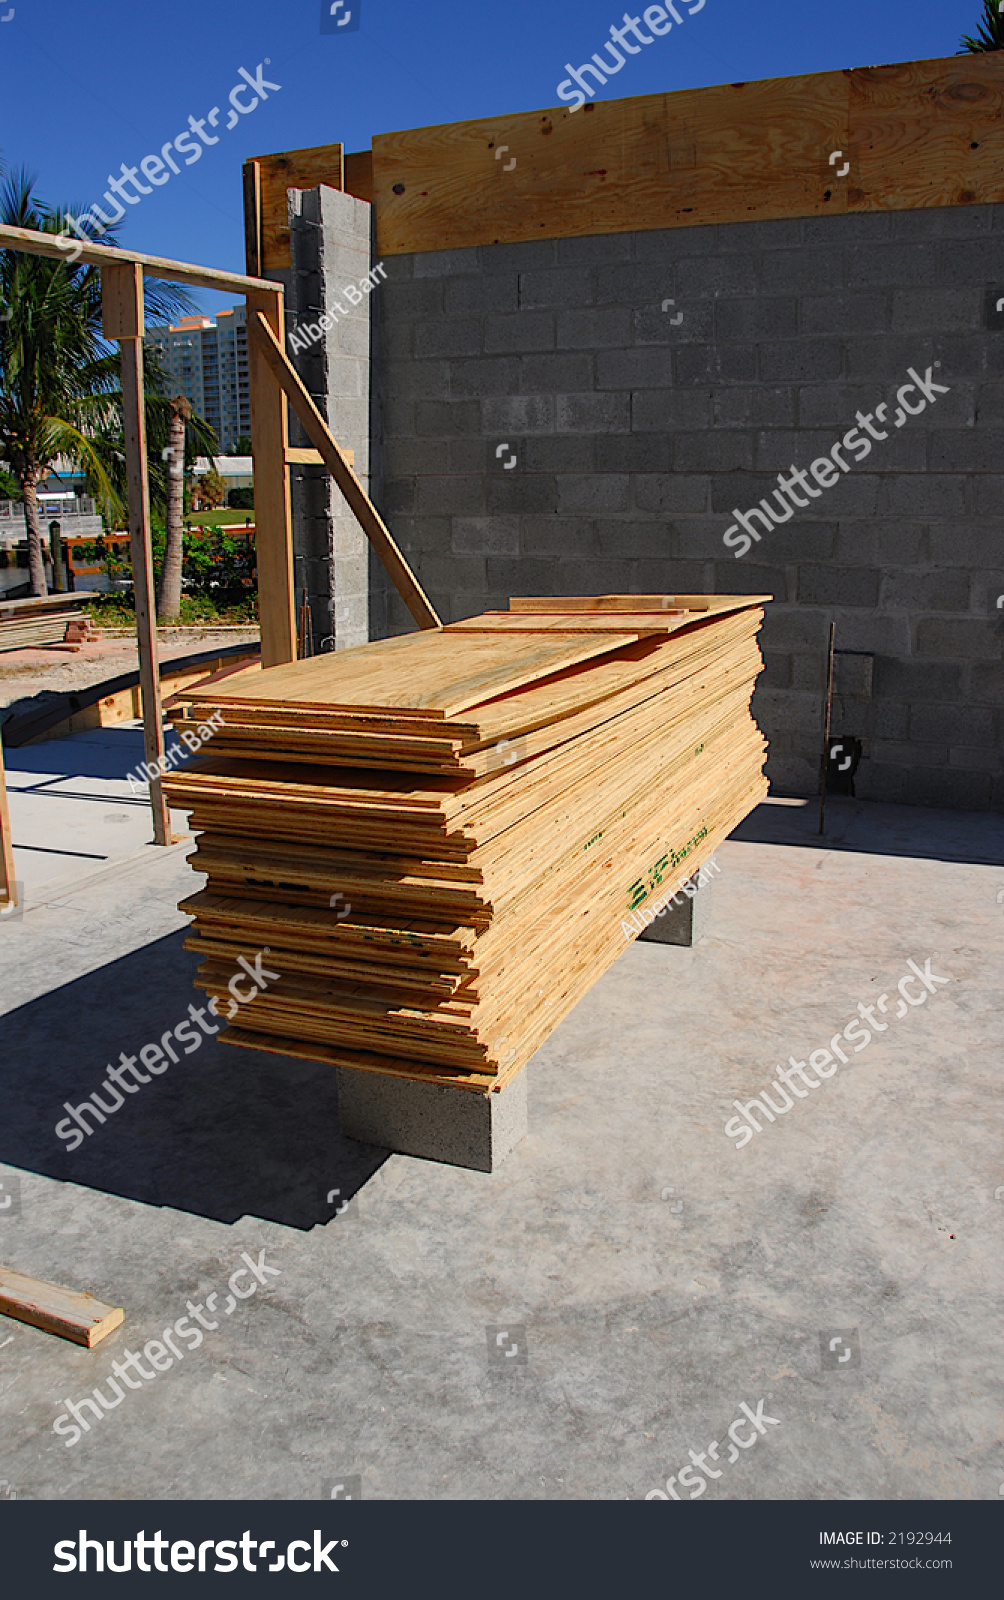 Residential Construction Site In South Florida Stock Photo ...